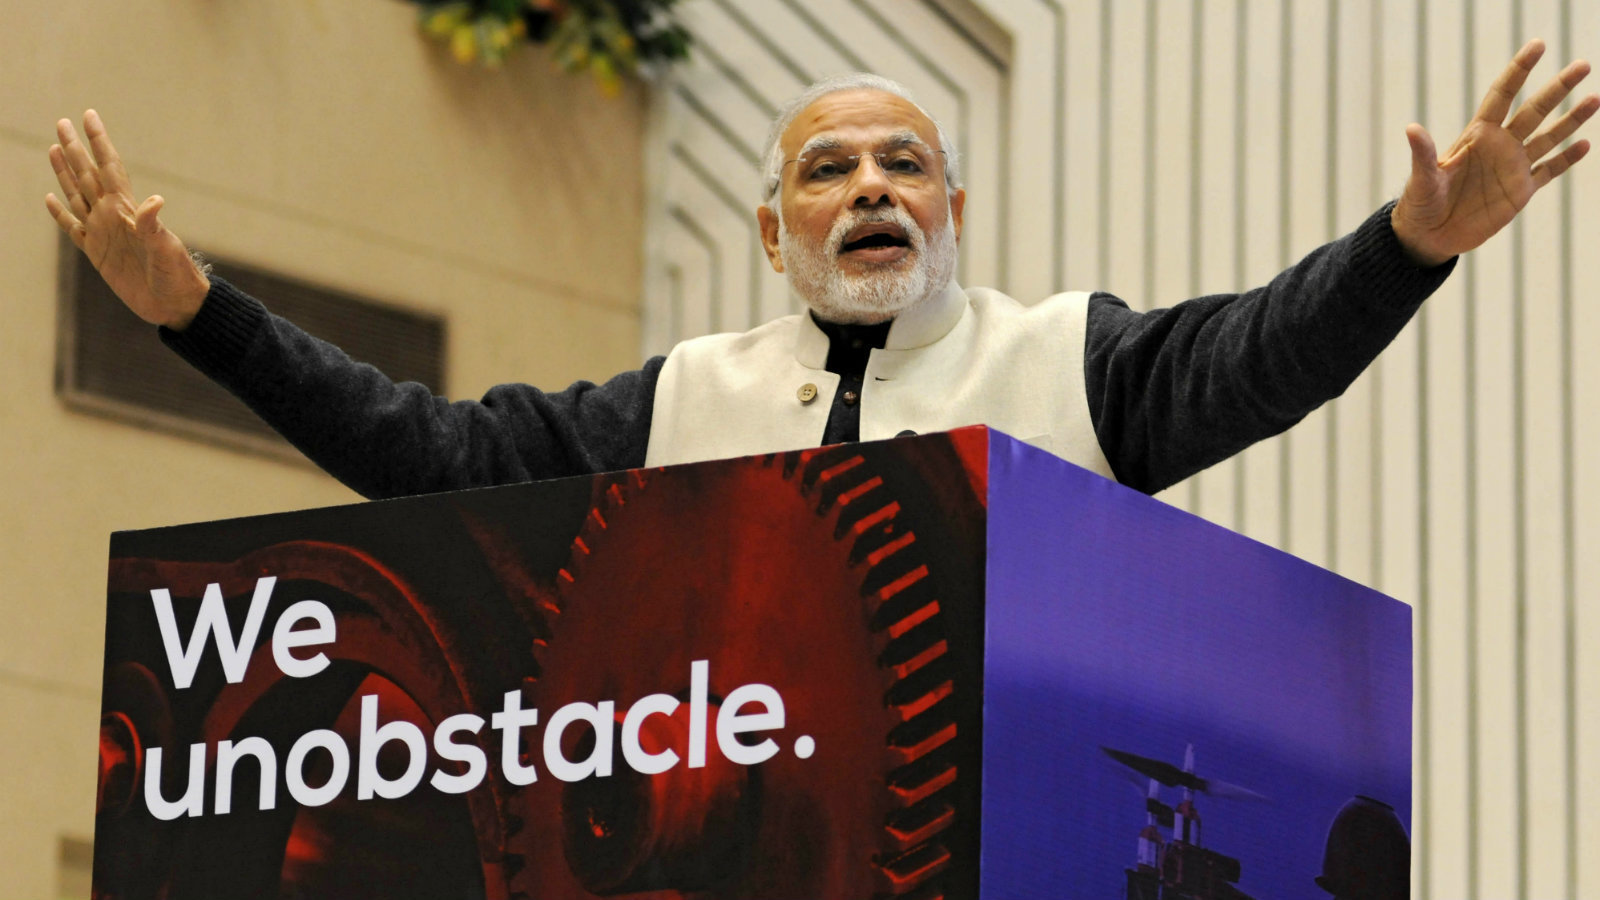 Indian Prime Minister Narendra Modi delivers a speech during 'Start Up India' event to launch the initiative and unveil the startup Action Plan by him in New Delhi, India, 16 January 2016. Centred around the entrepreneurial spirit of India, the Start-Up India plan is expected to boost the entrepreneurship in the country. The Indian government said it will introduce friendly tax measures and easy financing for start-ups to boost entrepreneurship at the grass-root level. With 4,200 firms, India already ranks third in the world in terms of the number of start-ups, behind the United States and Britain.